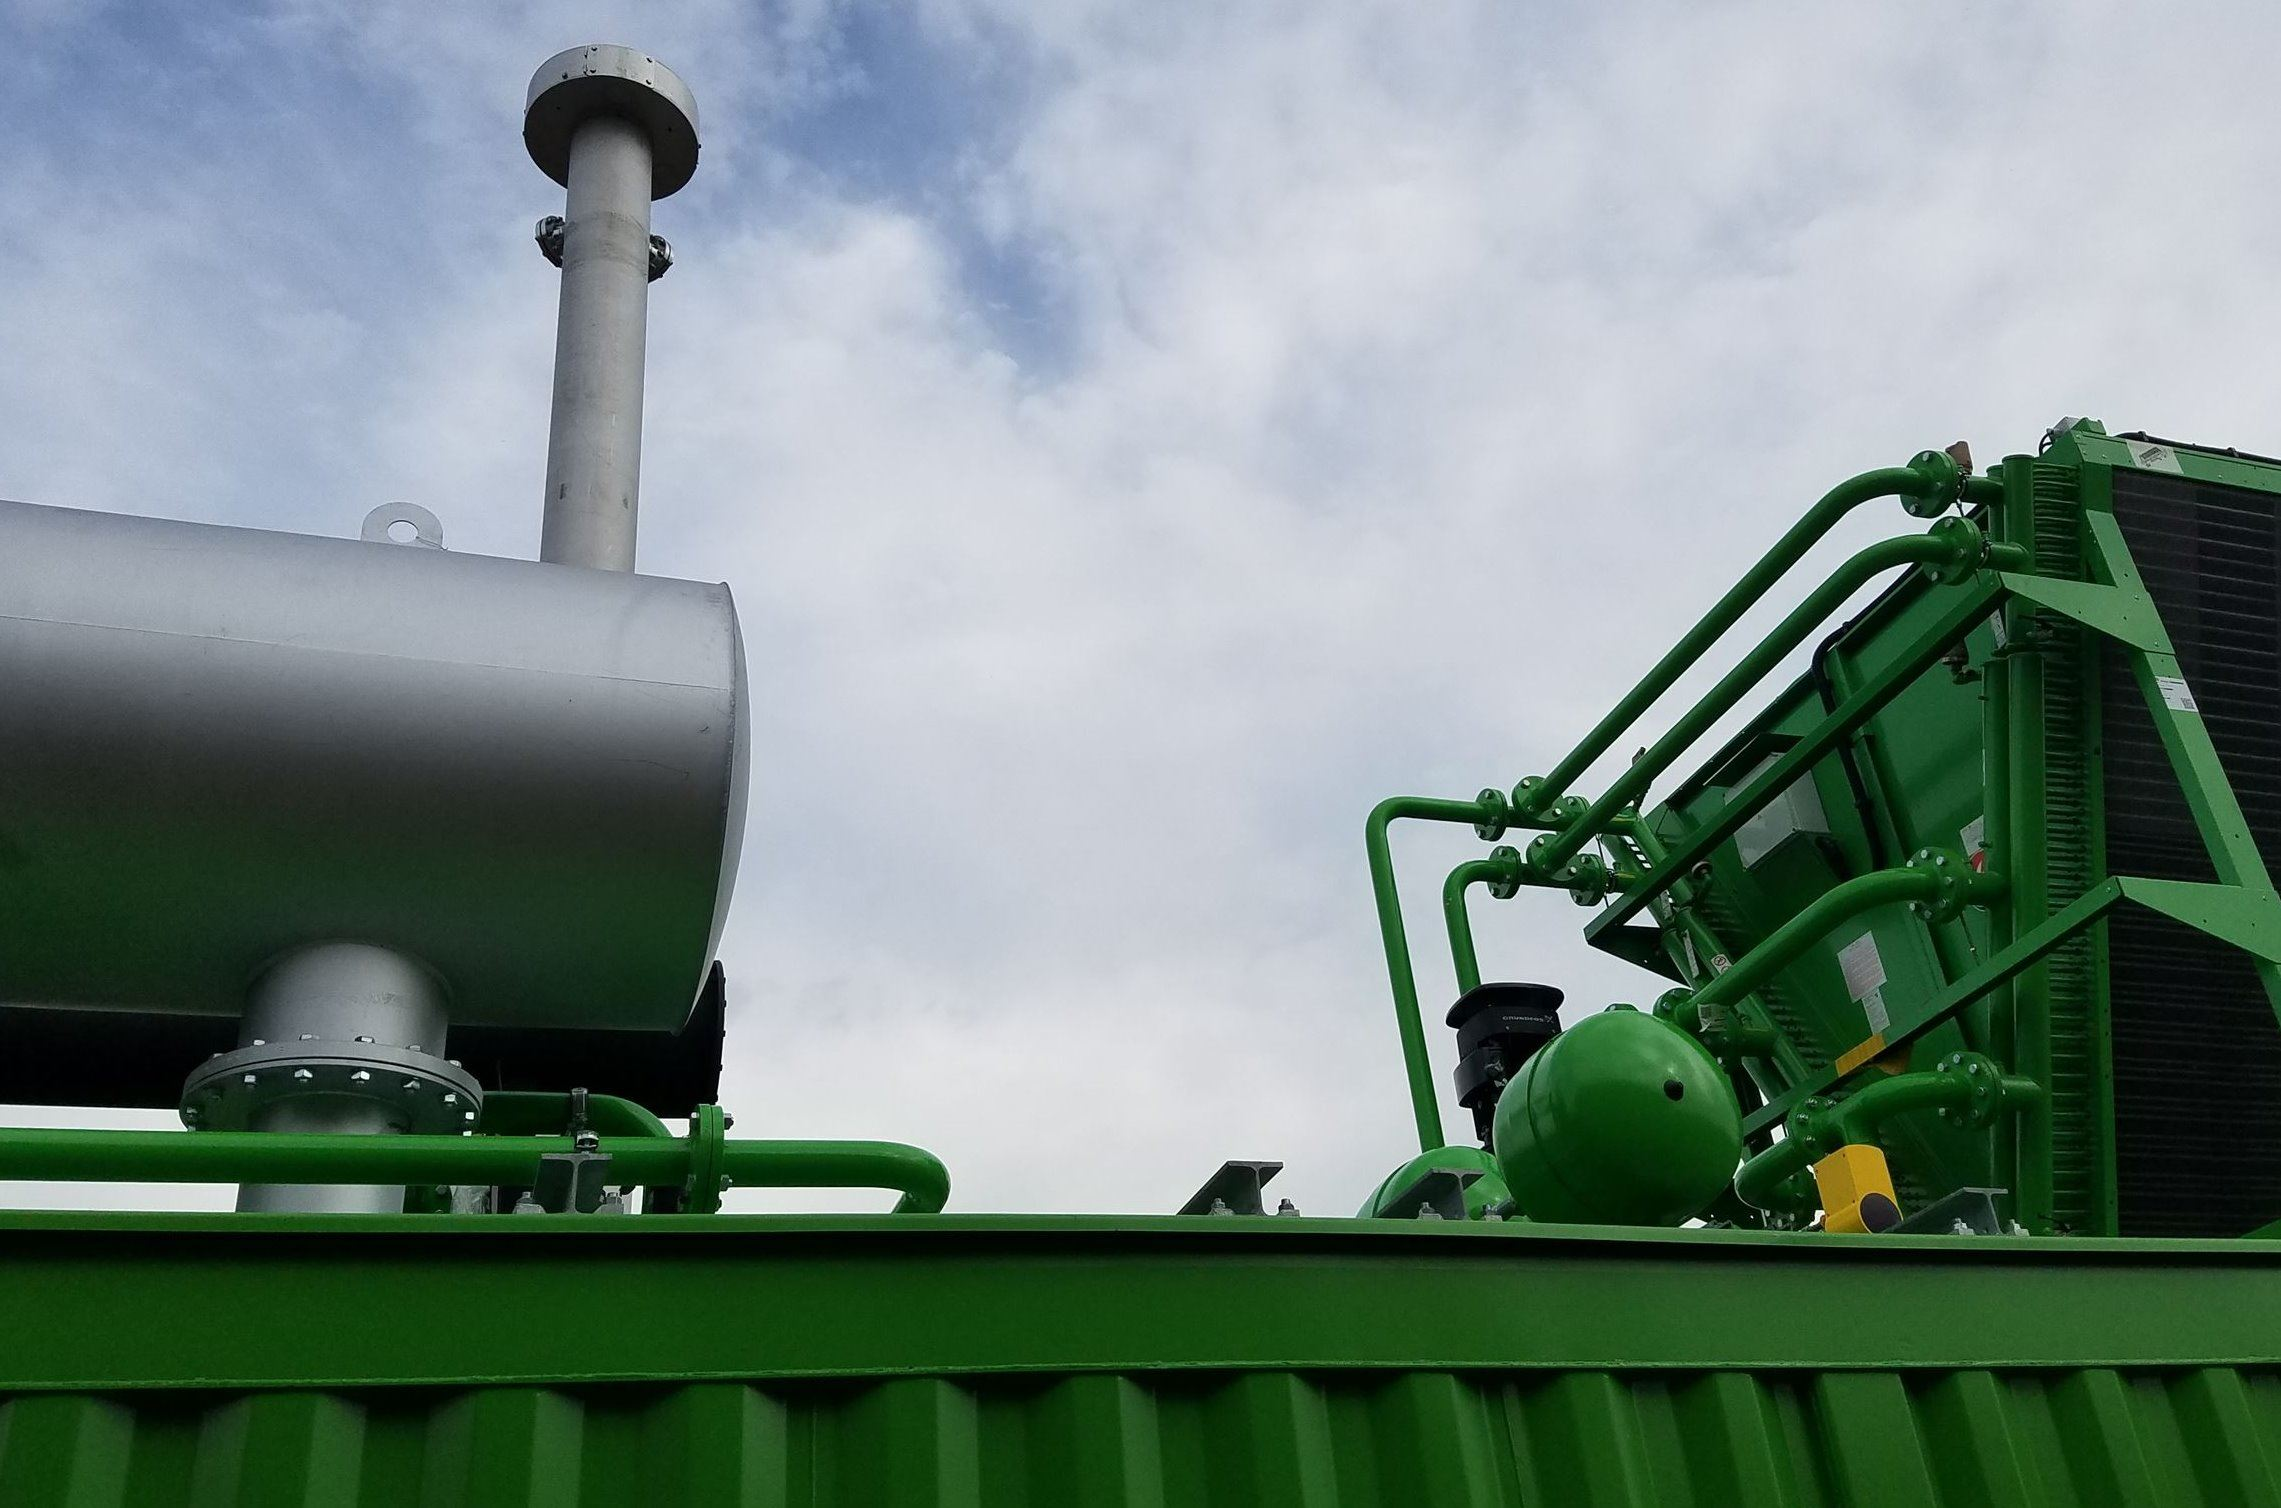 Green Generator Equipment outside with blue sky and clouds in background